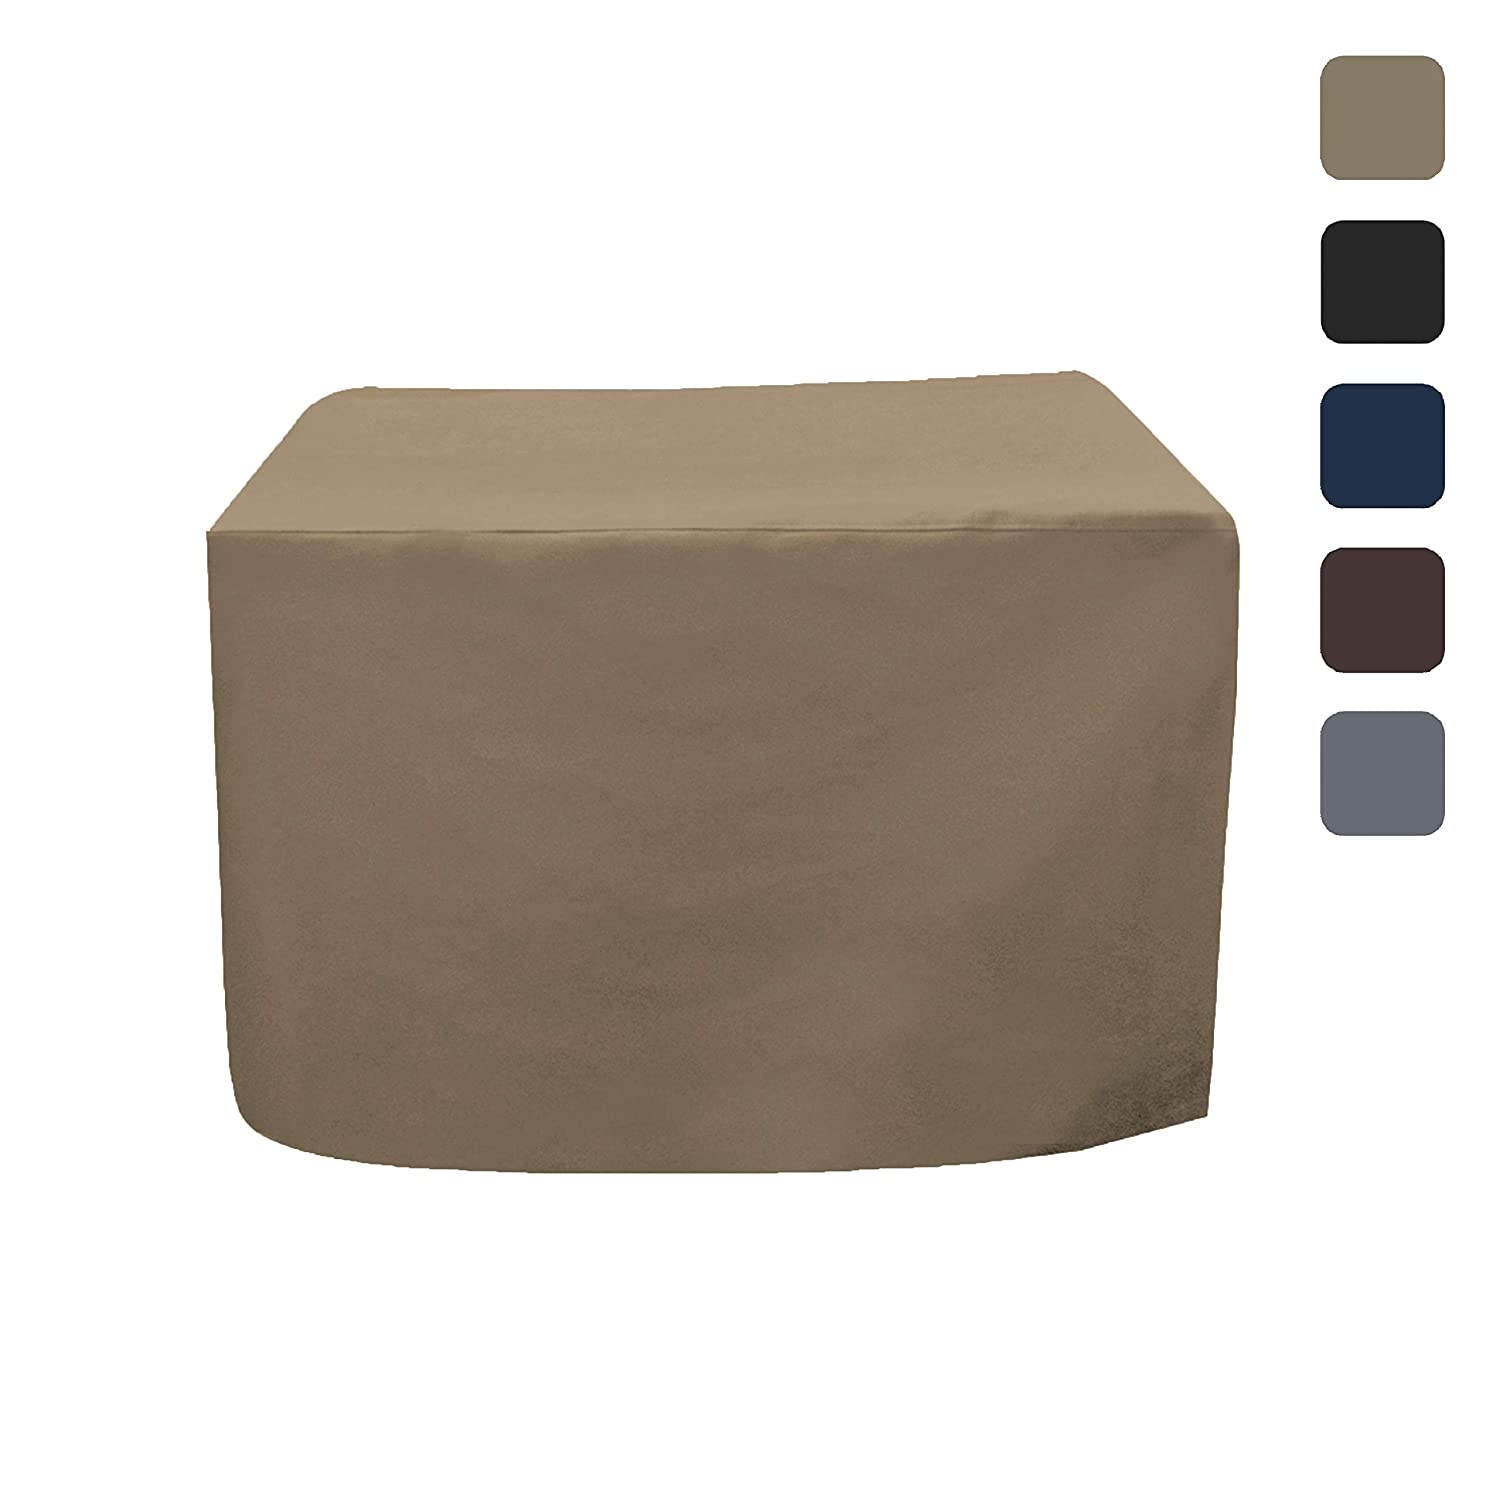 Fire Pit Outdoor Covers - Waterproof, 100% UV Resistant Square Fire Pit Cover, 12 Oz PVC Fabric with Air Pockets and Drawstring for Snugfit to Withstand Winds & Storms. (30